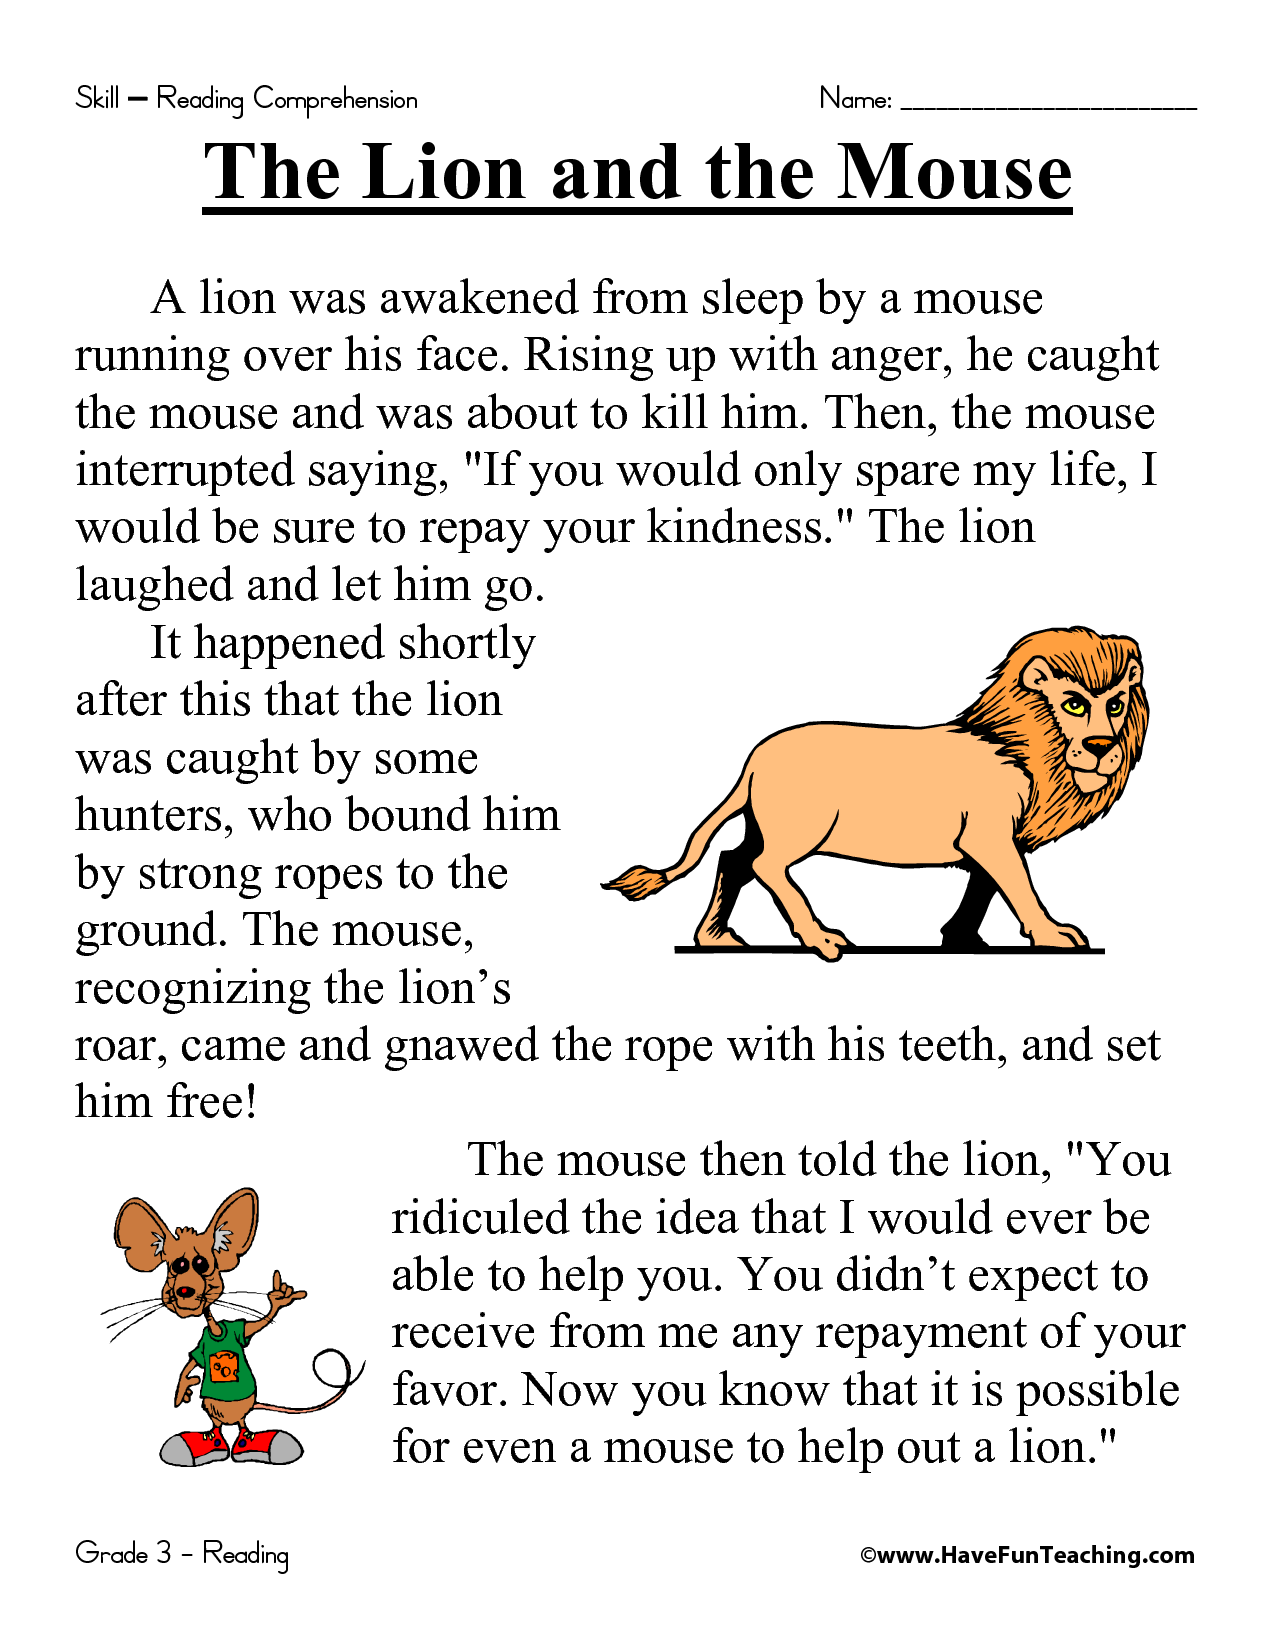 Free Worksheet Free Printable Reading Worksheets For 3rd Grade printable reading comprehension worksheets inc exercises for first grade the lion and mouse worksheet